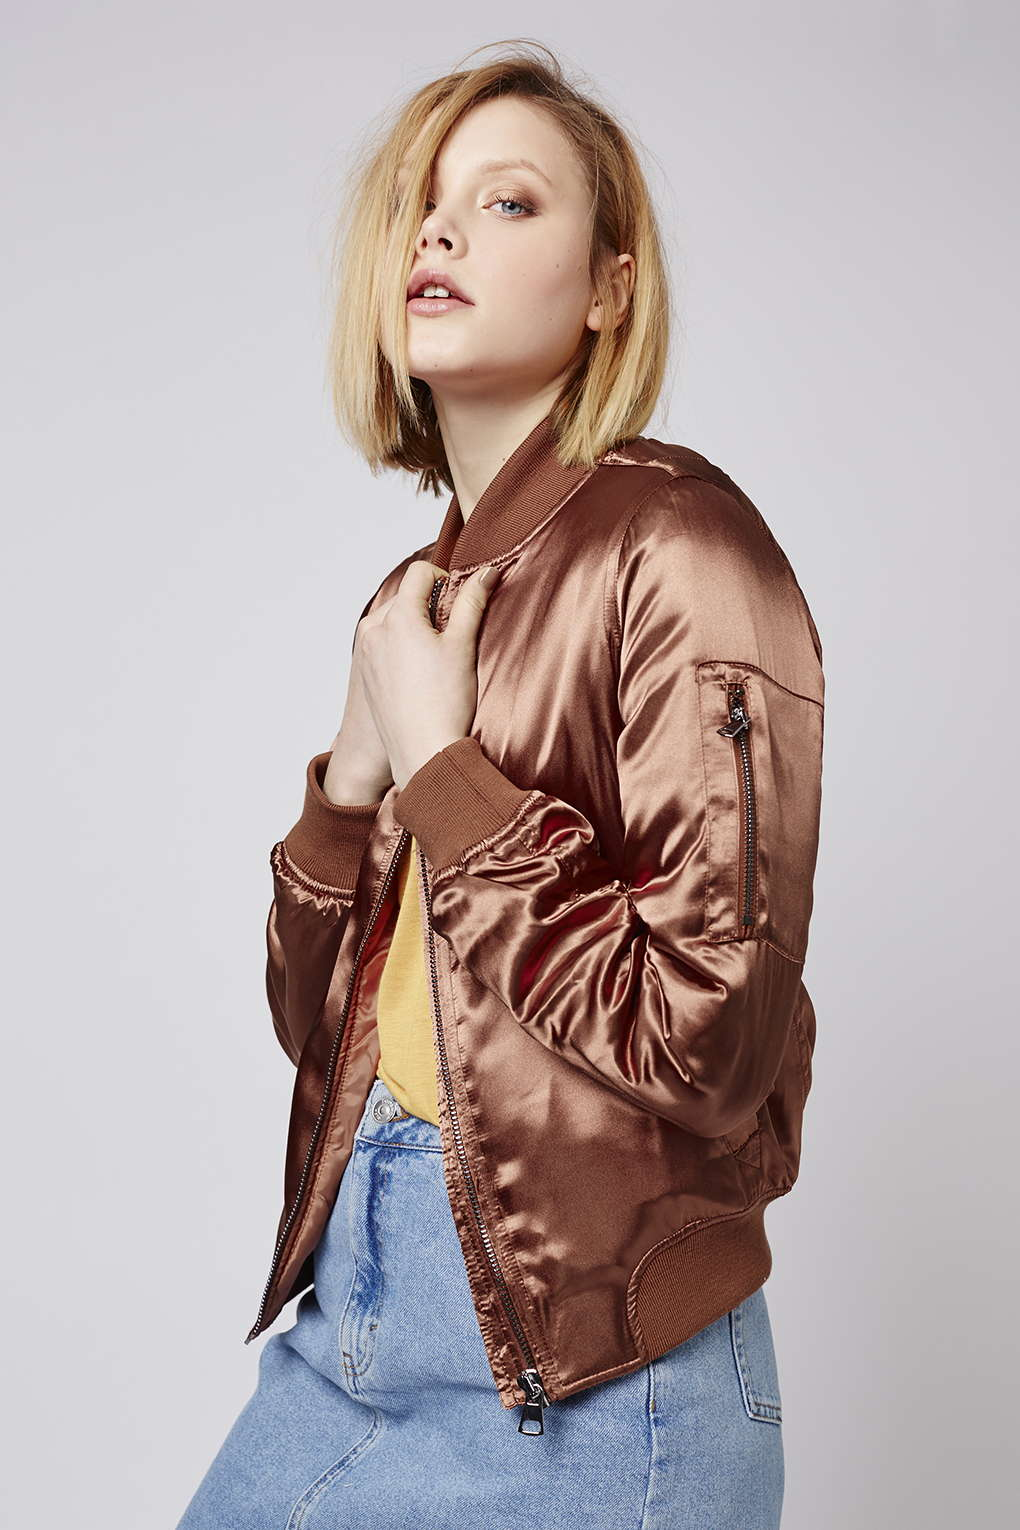 Bomber Jackets for Spring - Topshop Shiny Rust MA1 Bomber